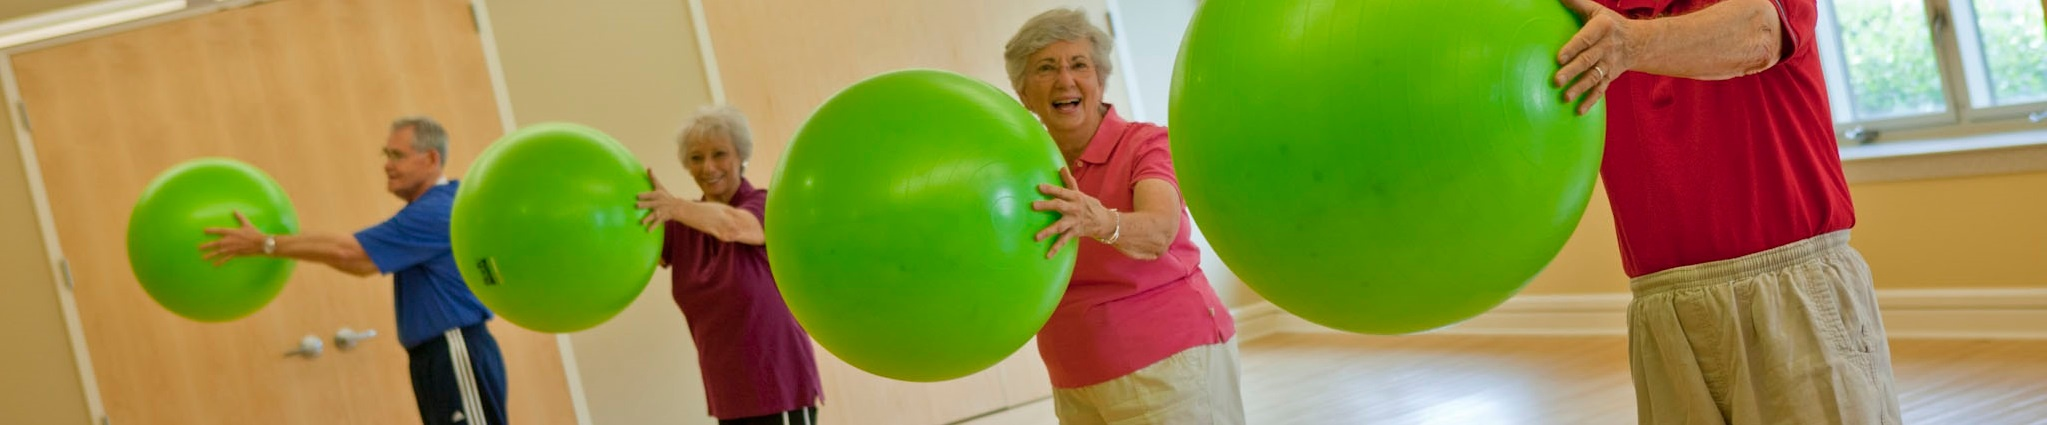 NIFS | Senior Group Fitness